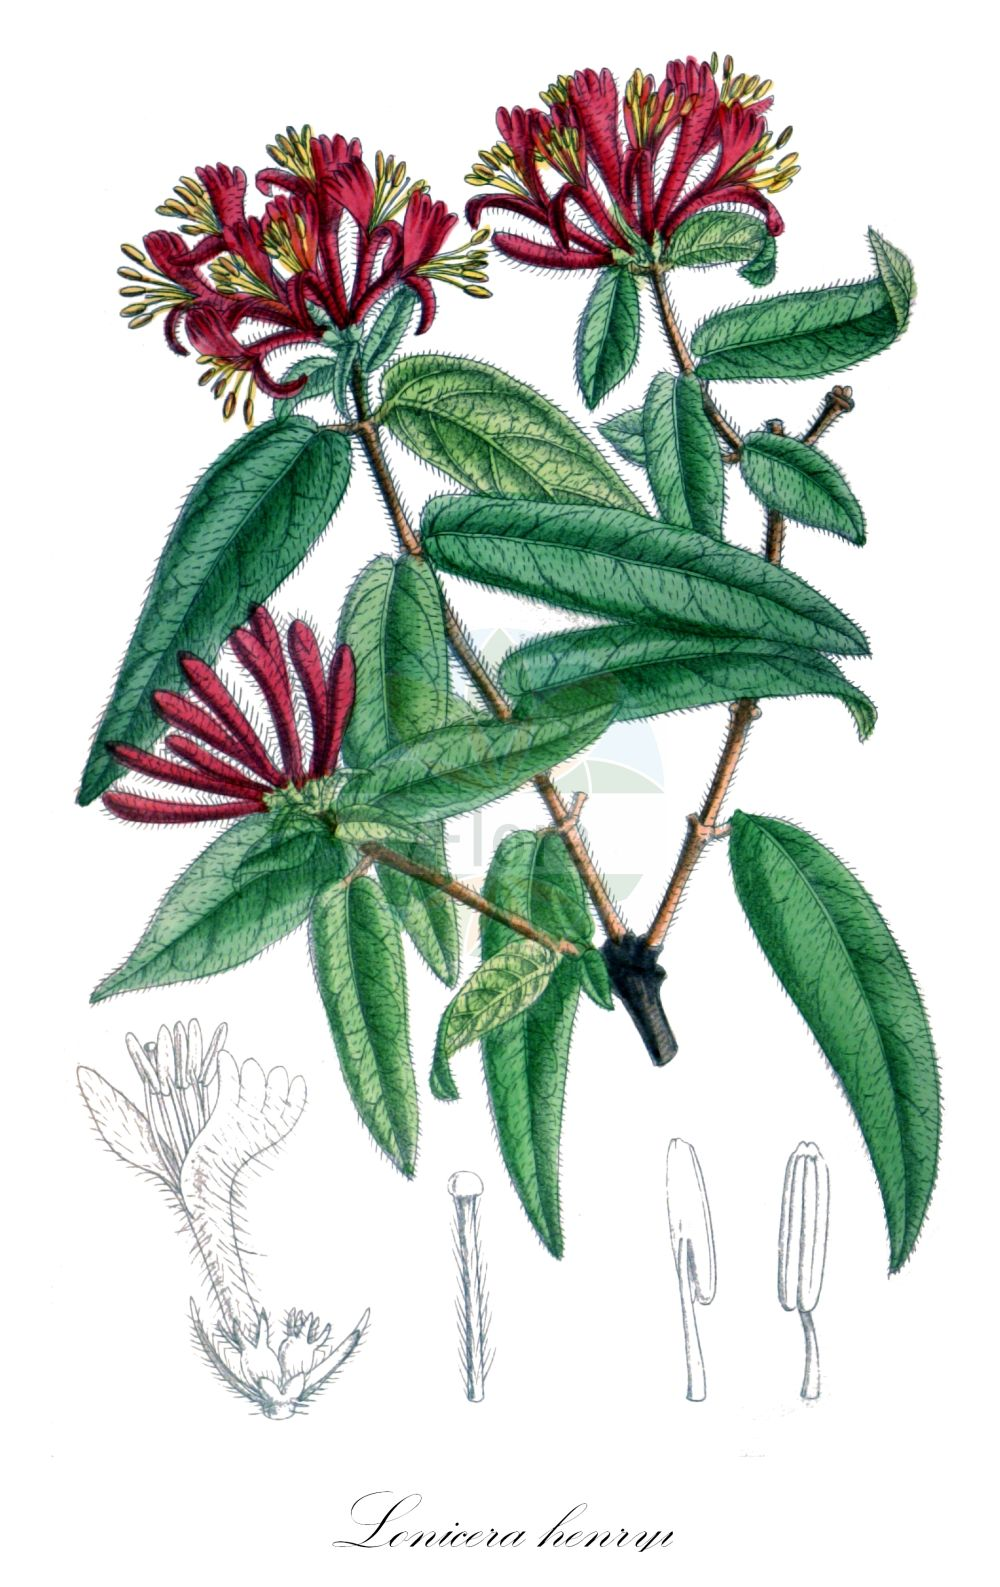 Historische Abbildung von Lonicera henryi (Henrys Heckenkirsche - Henry's Honeysuckle). Das Bild zeigt Blatt, Bluete, Frucht und Same. ---- Historical Drawing of Lonicera henryi (Henrys Heckenkirsche - Henry's Honeysuckle).The image is showing leaf, flower, fruit and seed.(Lonicera henryi,Henrys Heckenkirsche,Henry's Honeysuckle,Lonicera,Heckenkirsche,Honeysuckle,Caprifoliaceae,Geissblattgewaechse,Honeysuckle family,Blatt,Bluete,Frucht,Same,leaf,flower,fruit,seed,Curtis Botanical Magazine (1909))